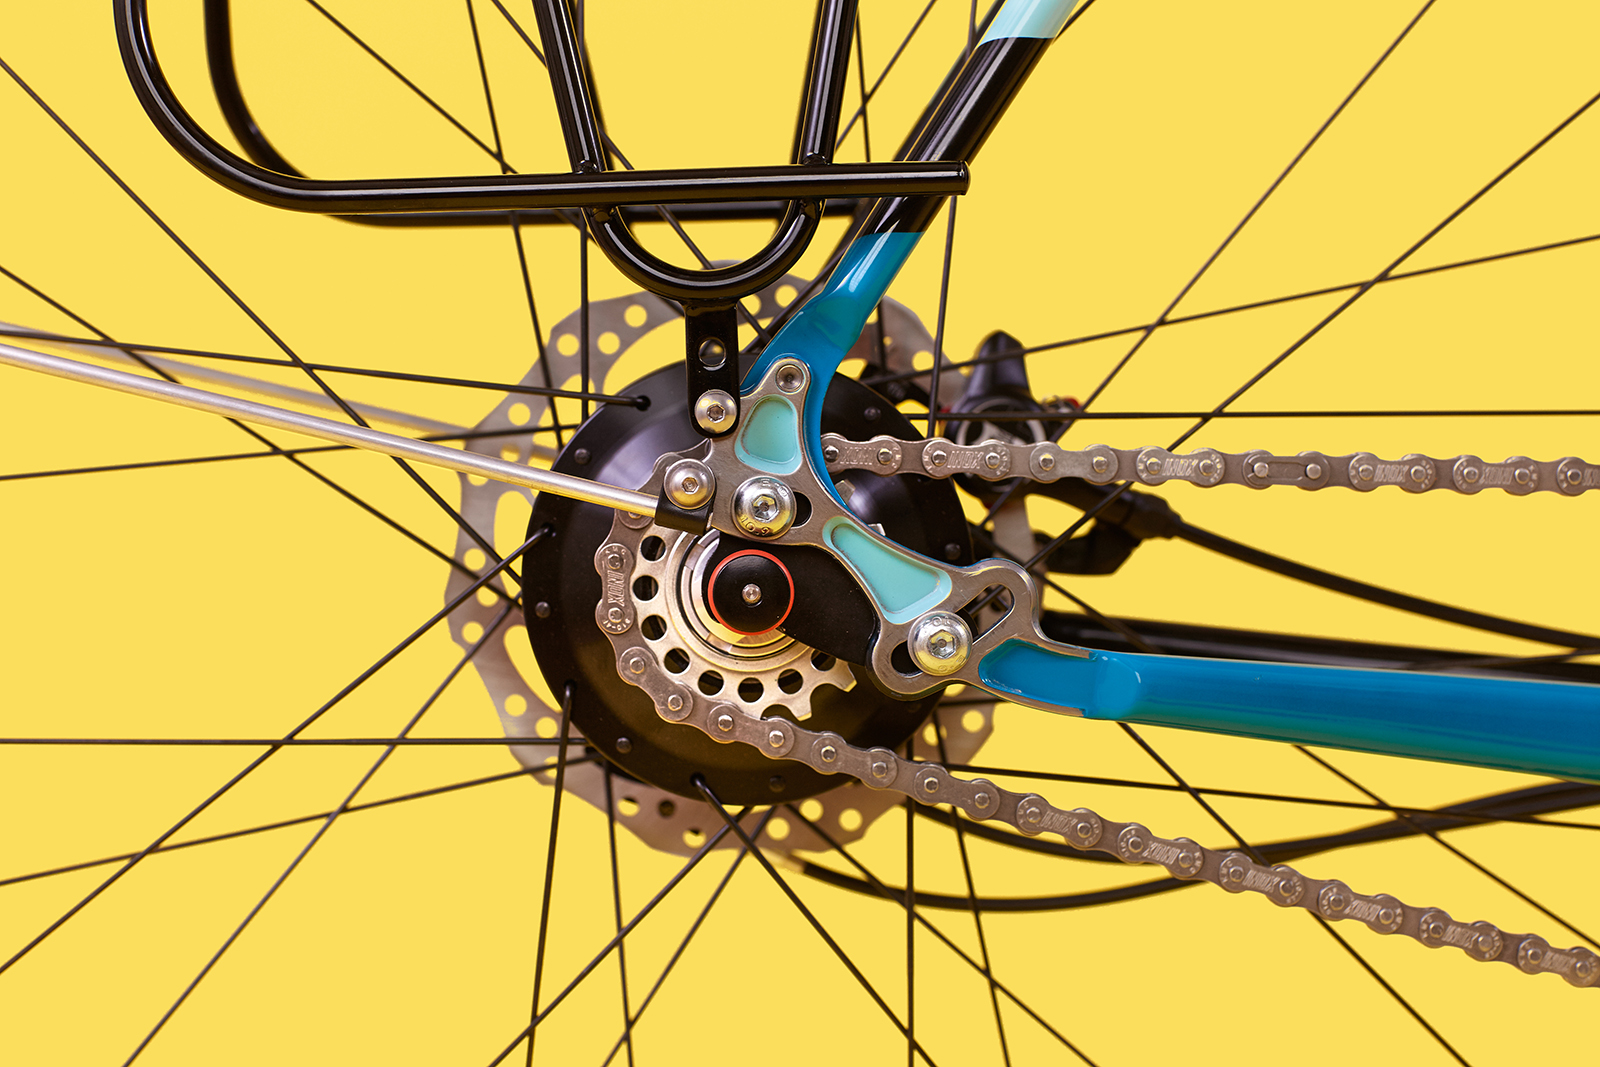 Notice the two mounting points near the rear dropout for fenders and panniers.